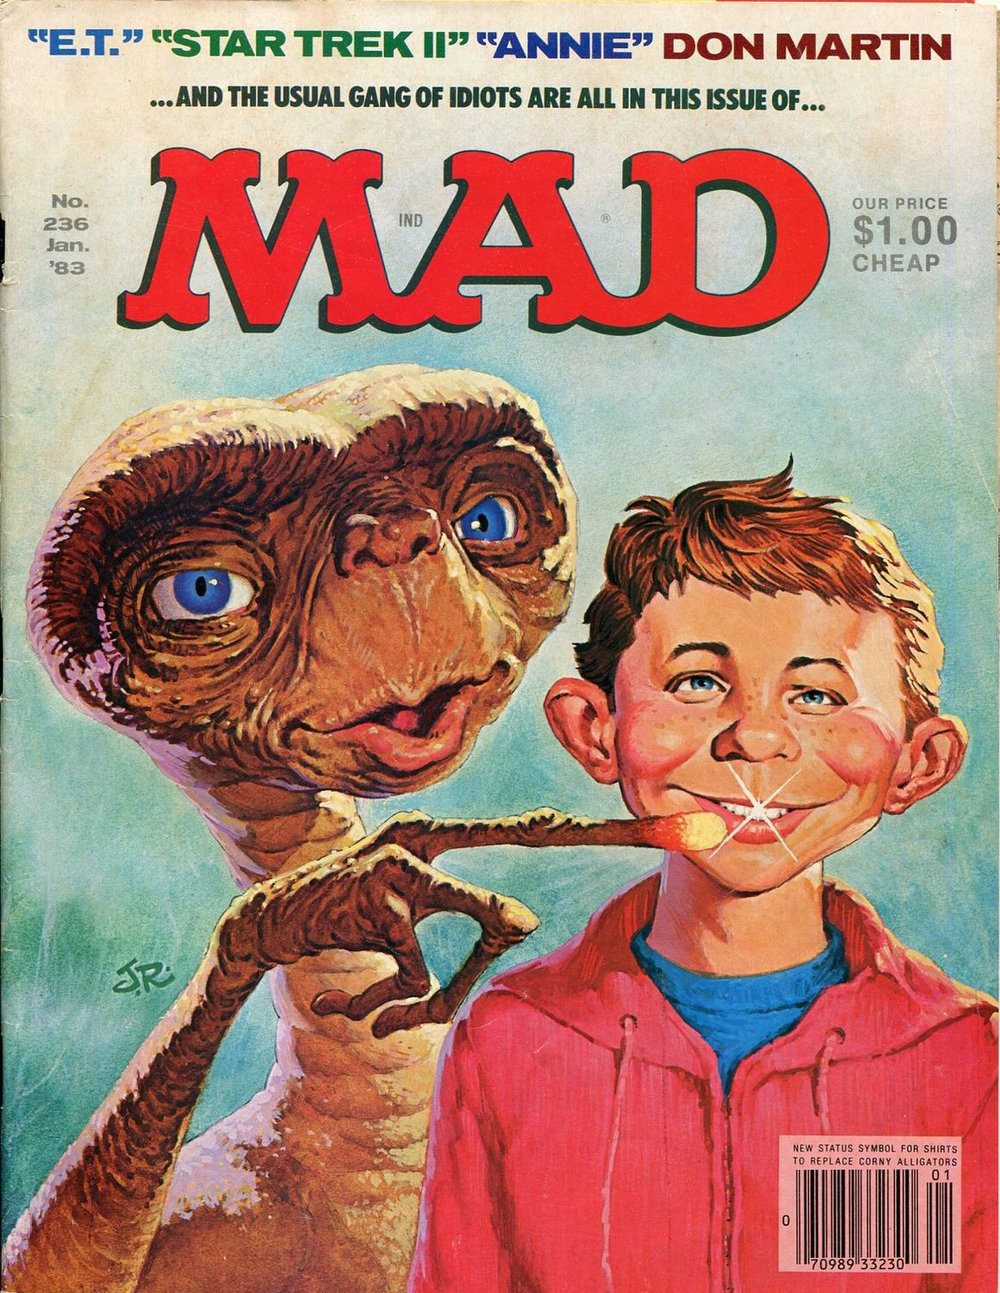 Mad magazine no. 236 January 1983